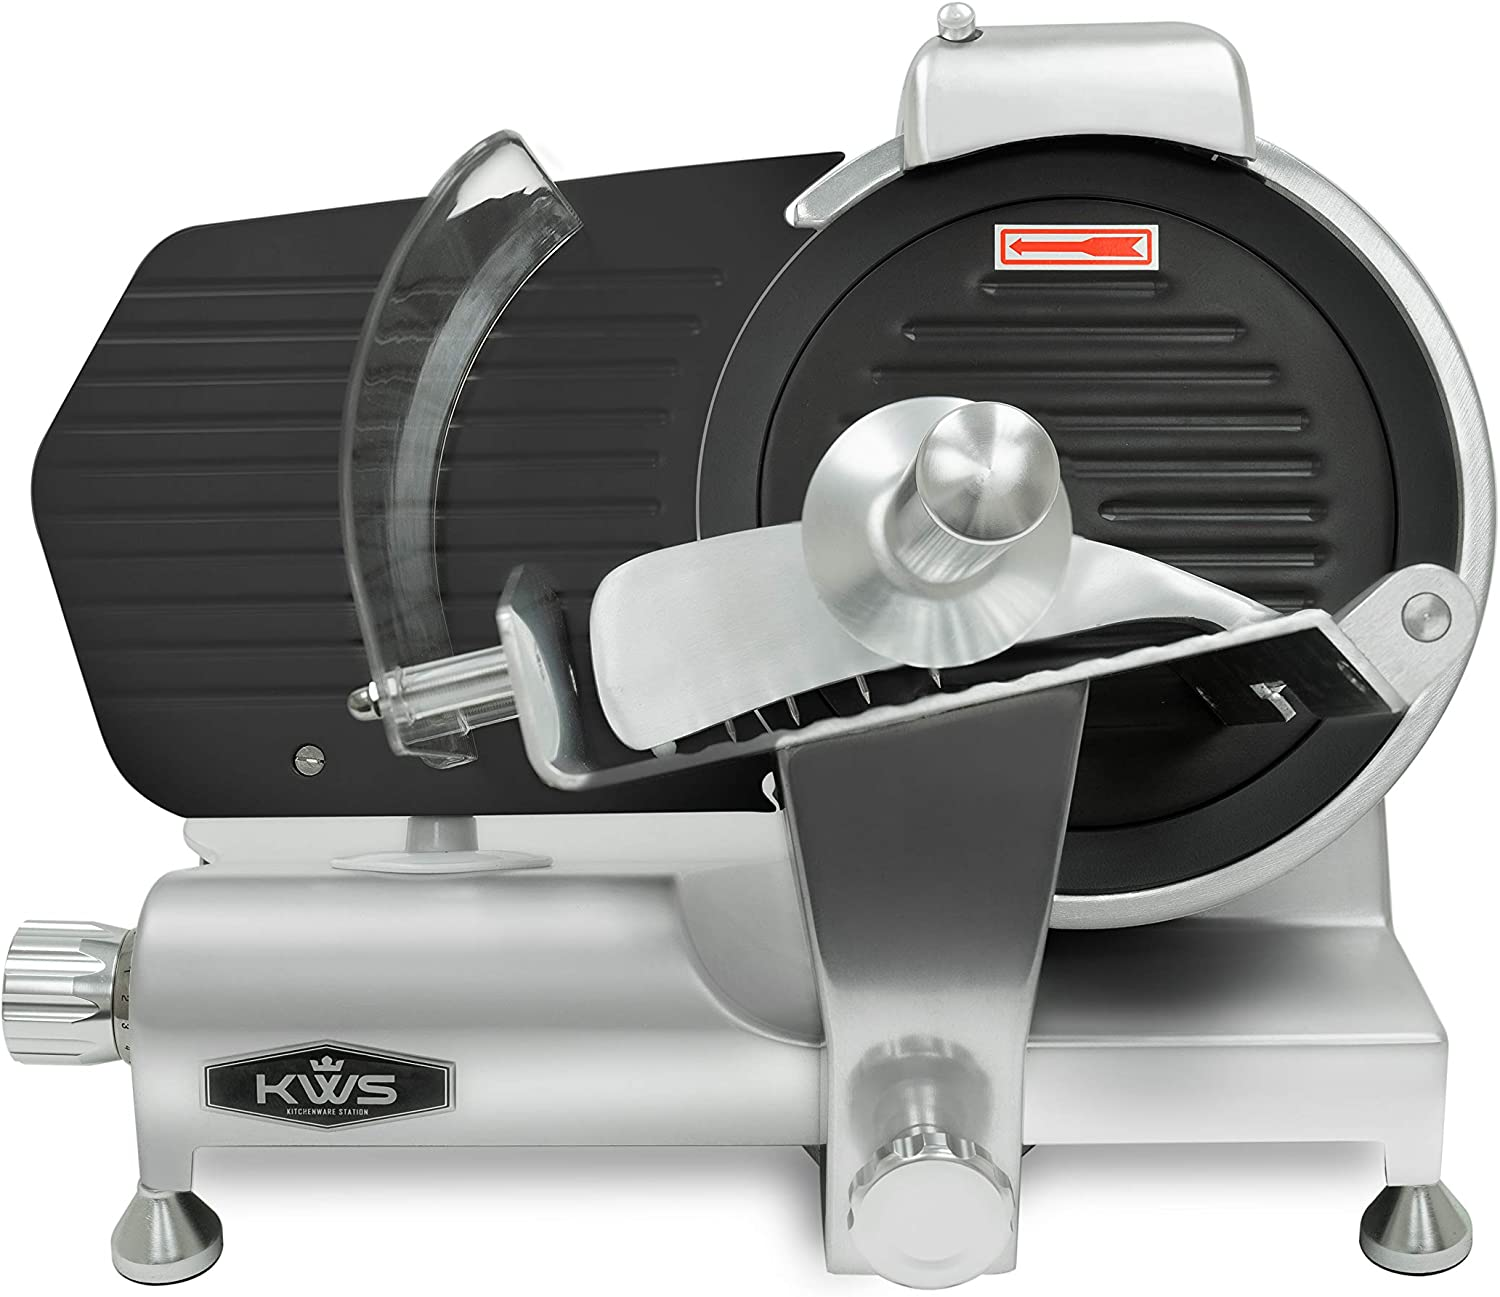 KWS MS-10ET All Metal 320W Time sale Electric with Meat Slicer 10-Inch Limited price Non